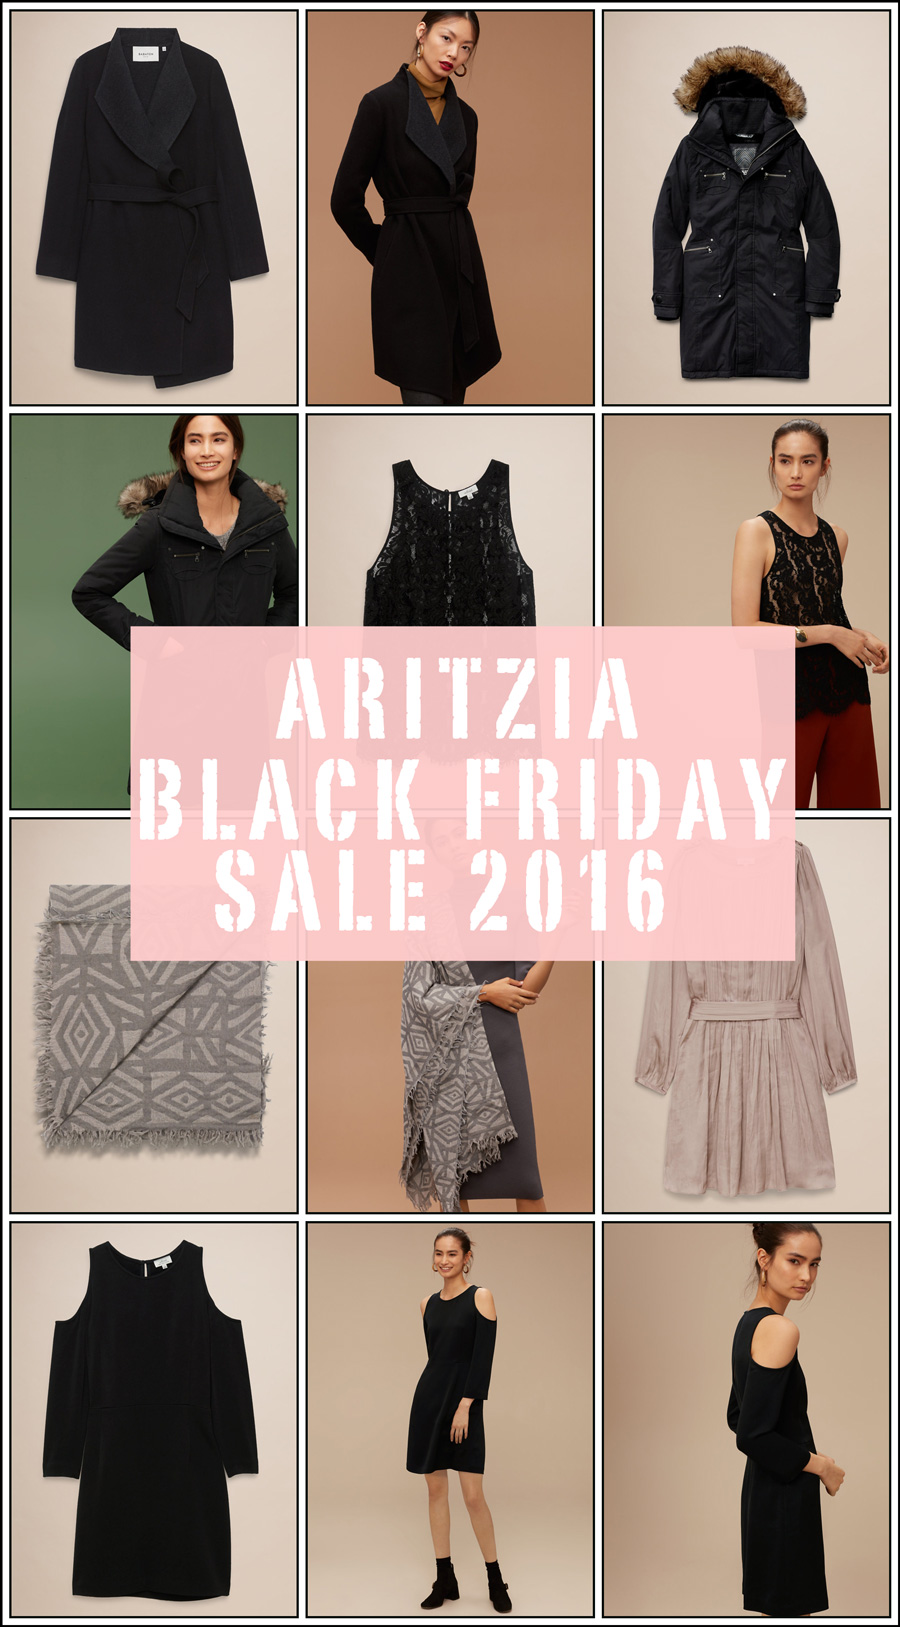 ARITZIA BLACK FRIDAY SALE 2016